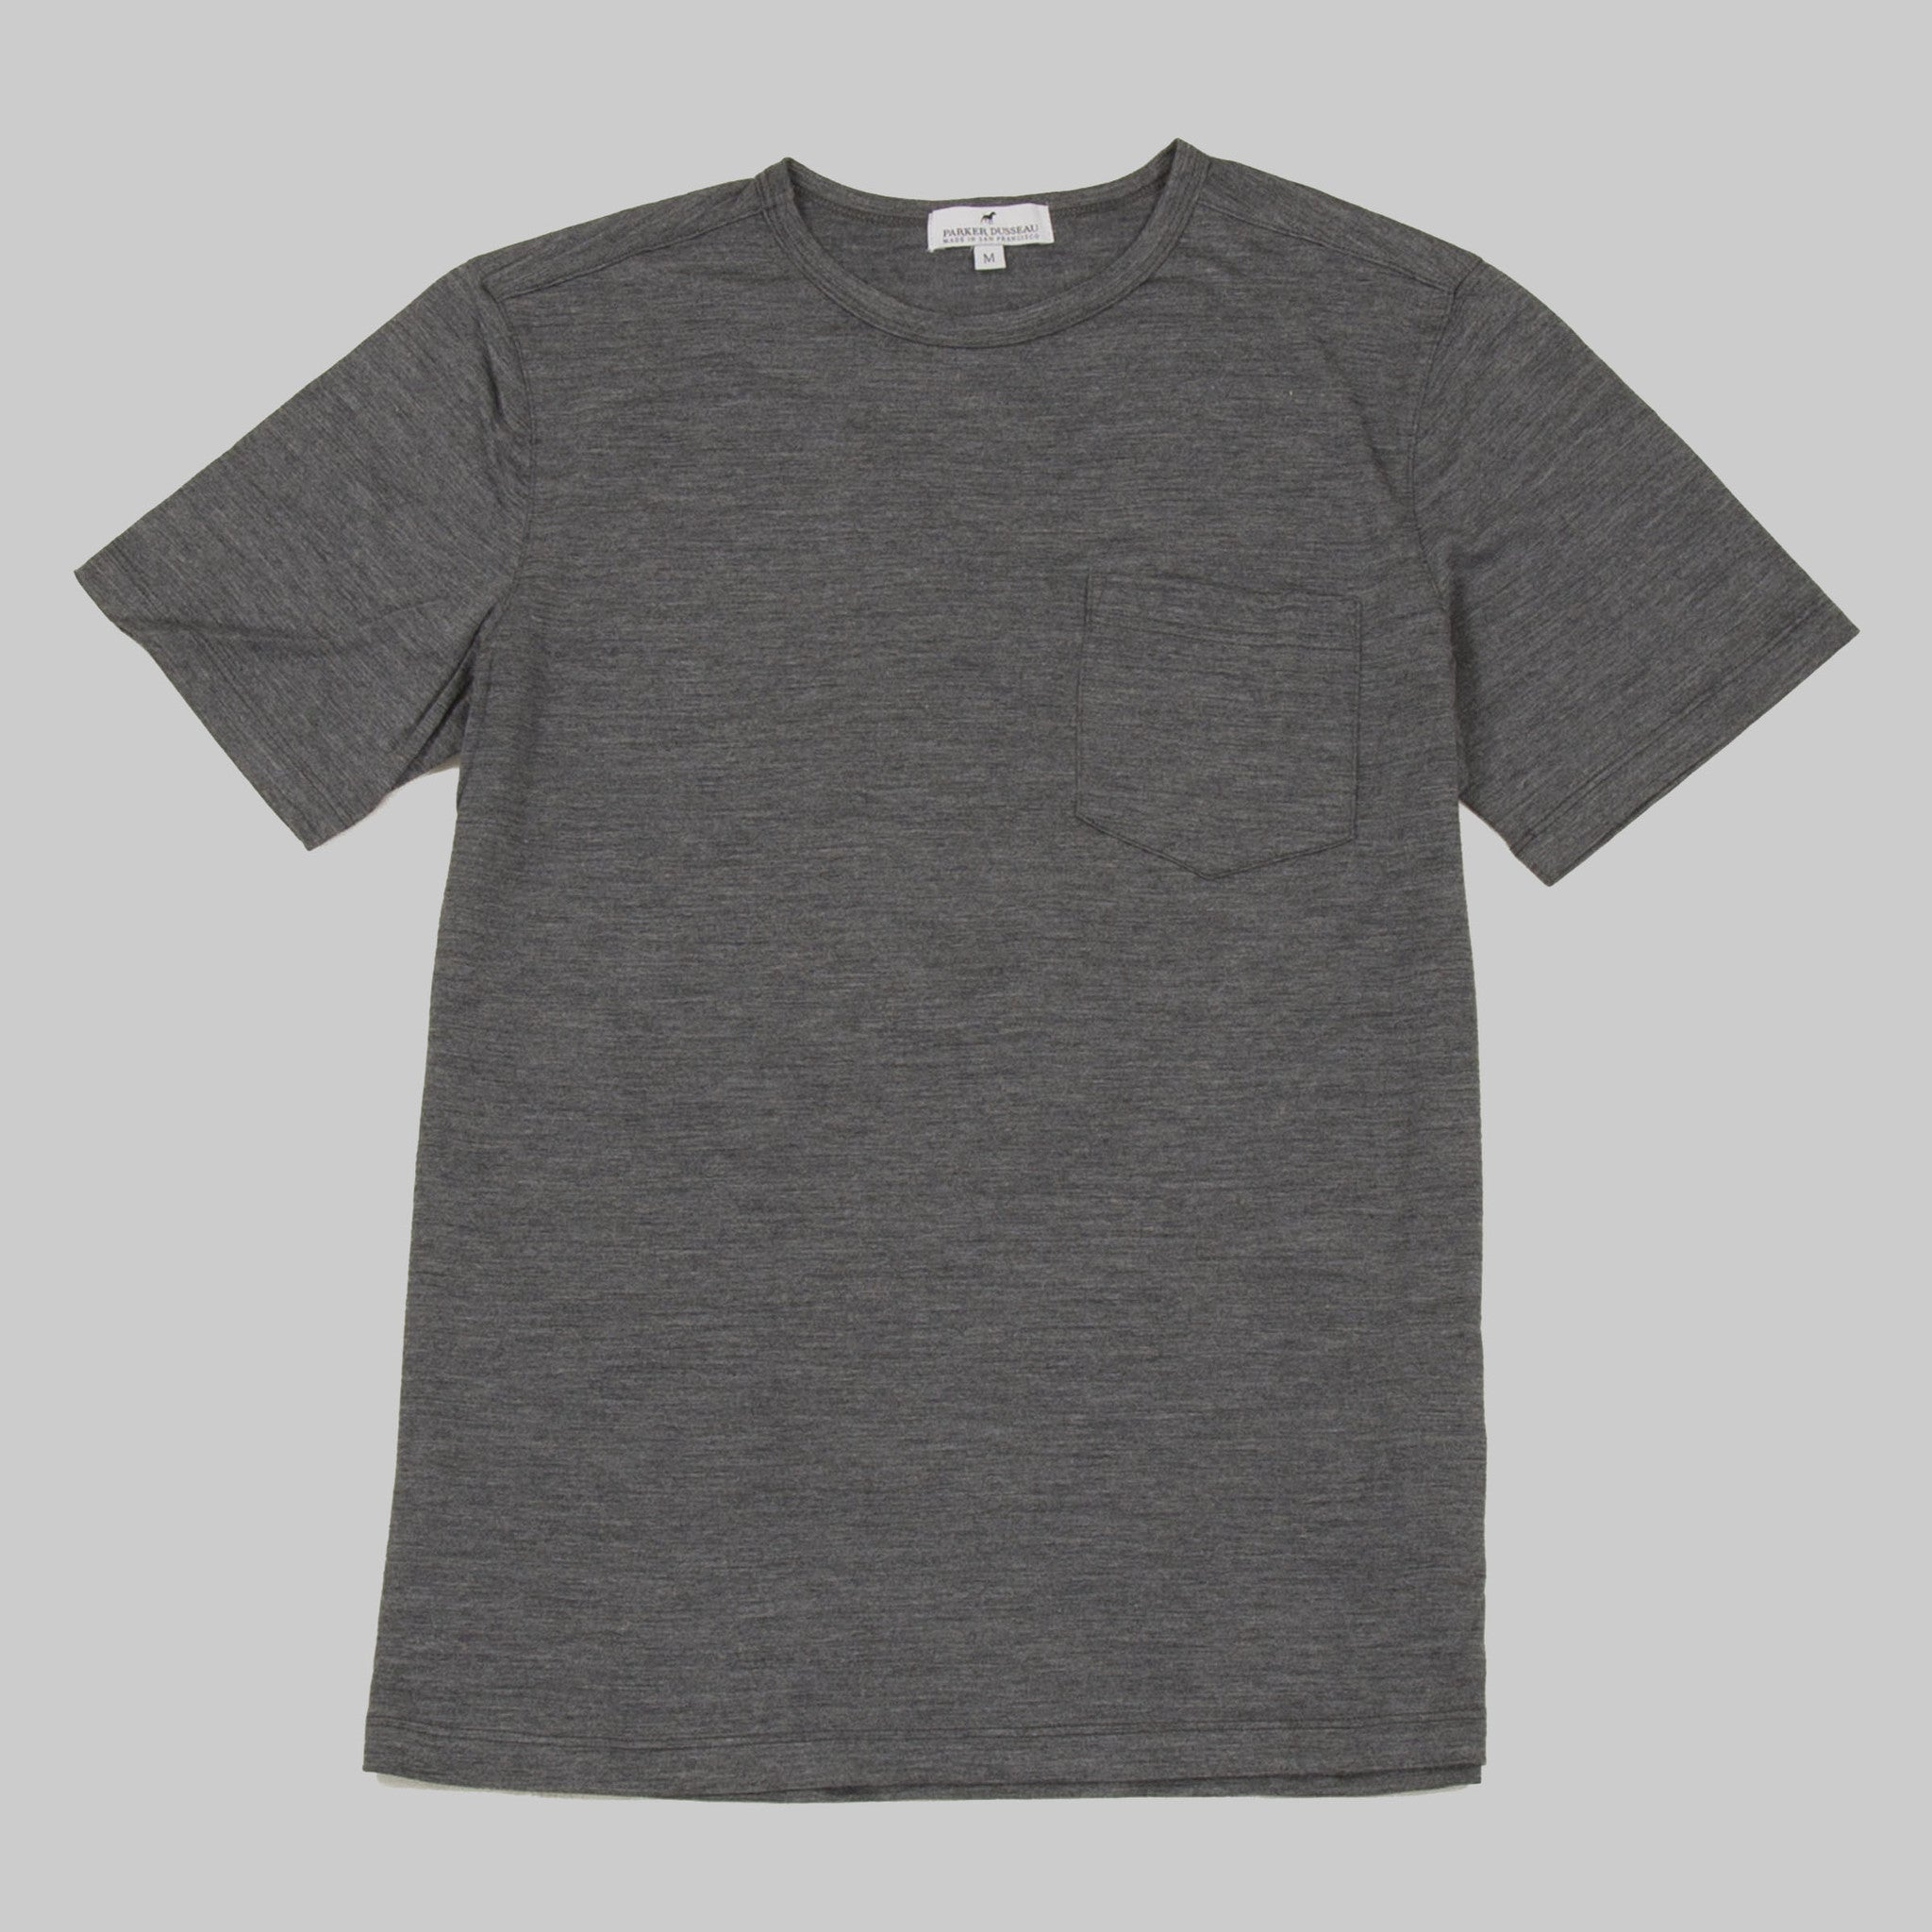 Merino Wool Tee - Platinum Short Sleeve Merino Tee- Parker Dusseau : Functional Menswear Essentials for the Always Ready Lifestyle. Based in San Francisco, California